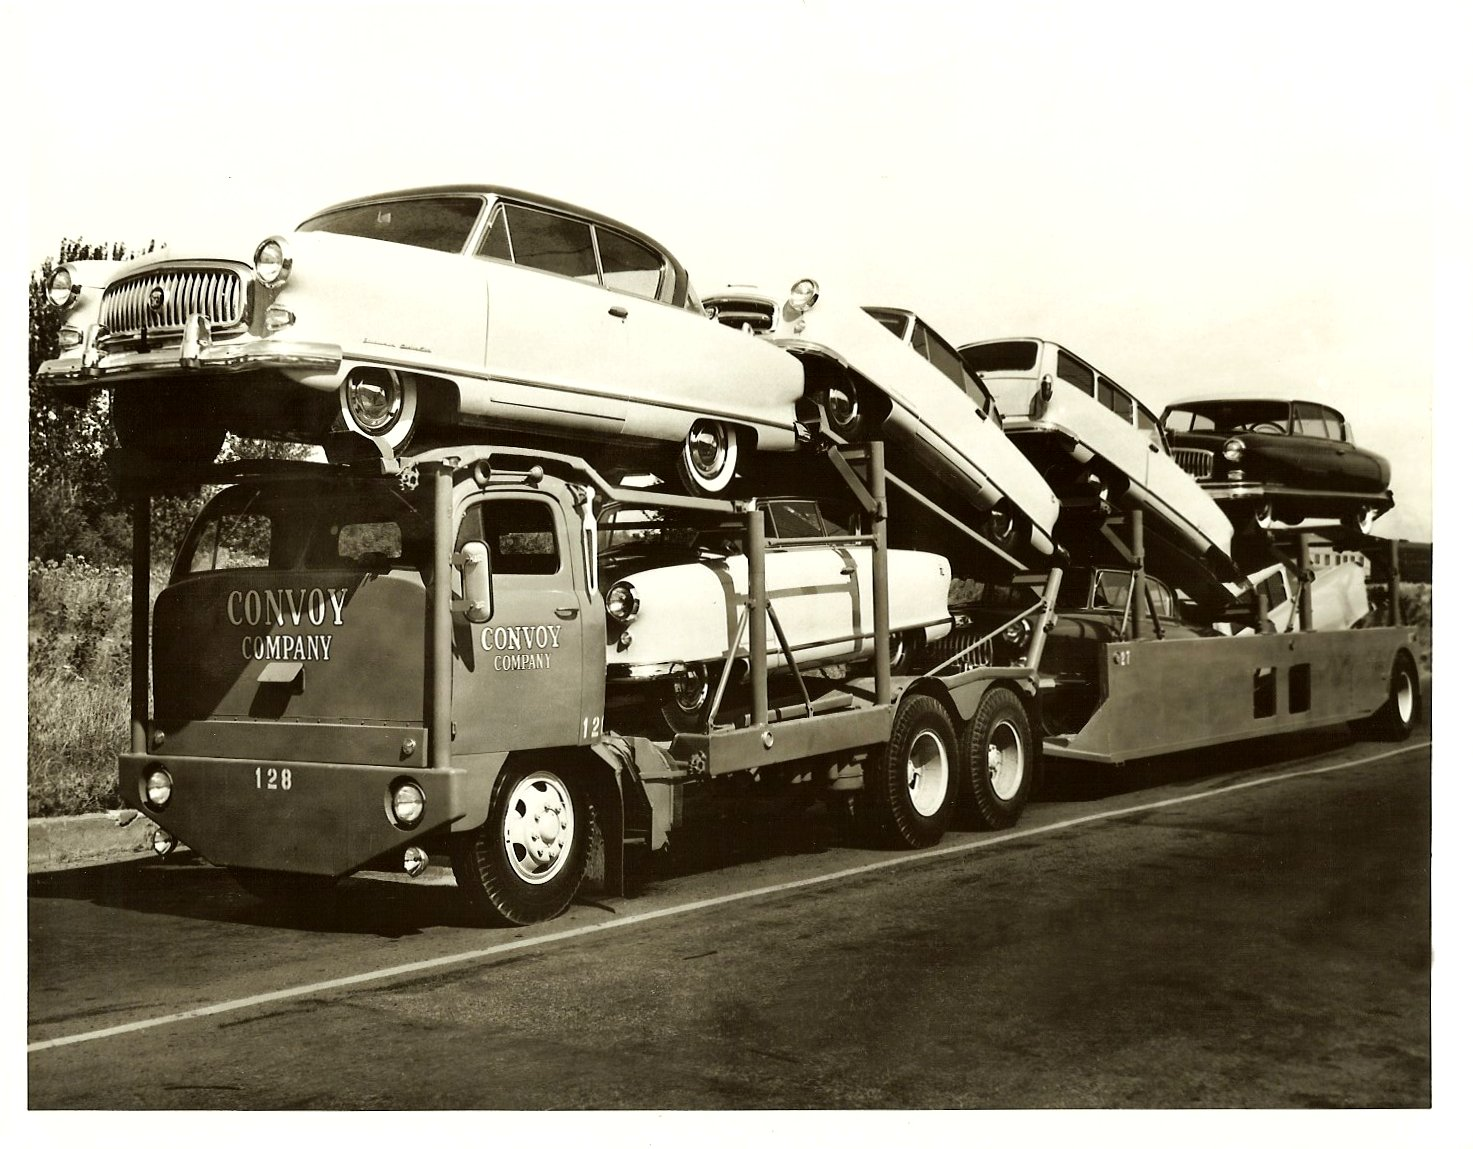 1952 NASH automobiles on a CONVOY Company Auto Trailer Truck 10″x8″ Black & White photograph